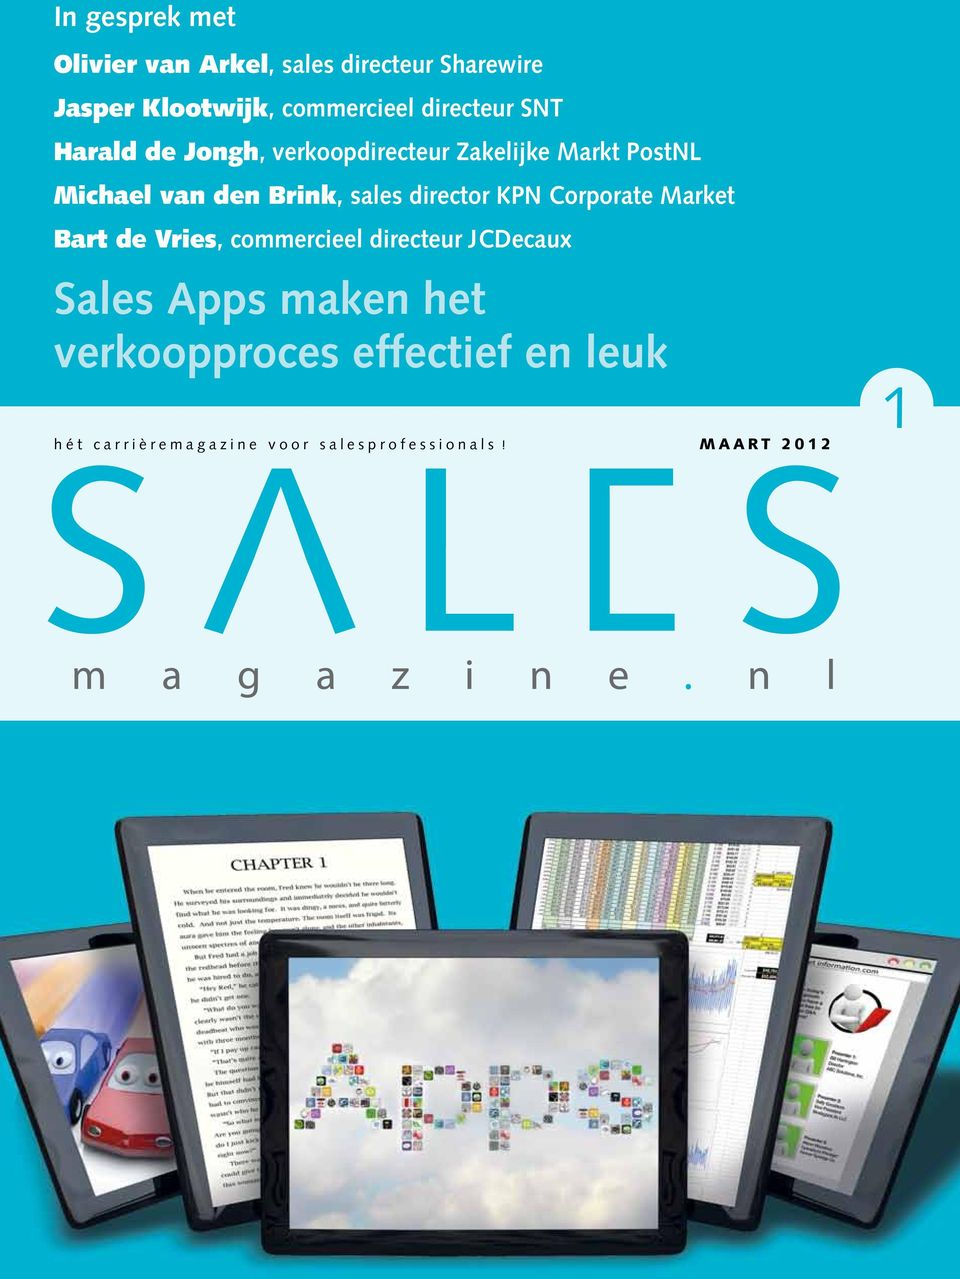 sales director KPN Corporate Market Bart de Vries, commercieel directeur JCDecaux Sales Apps